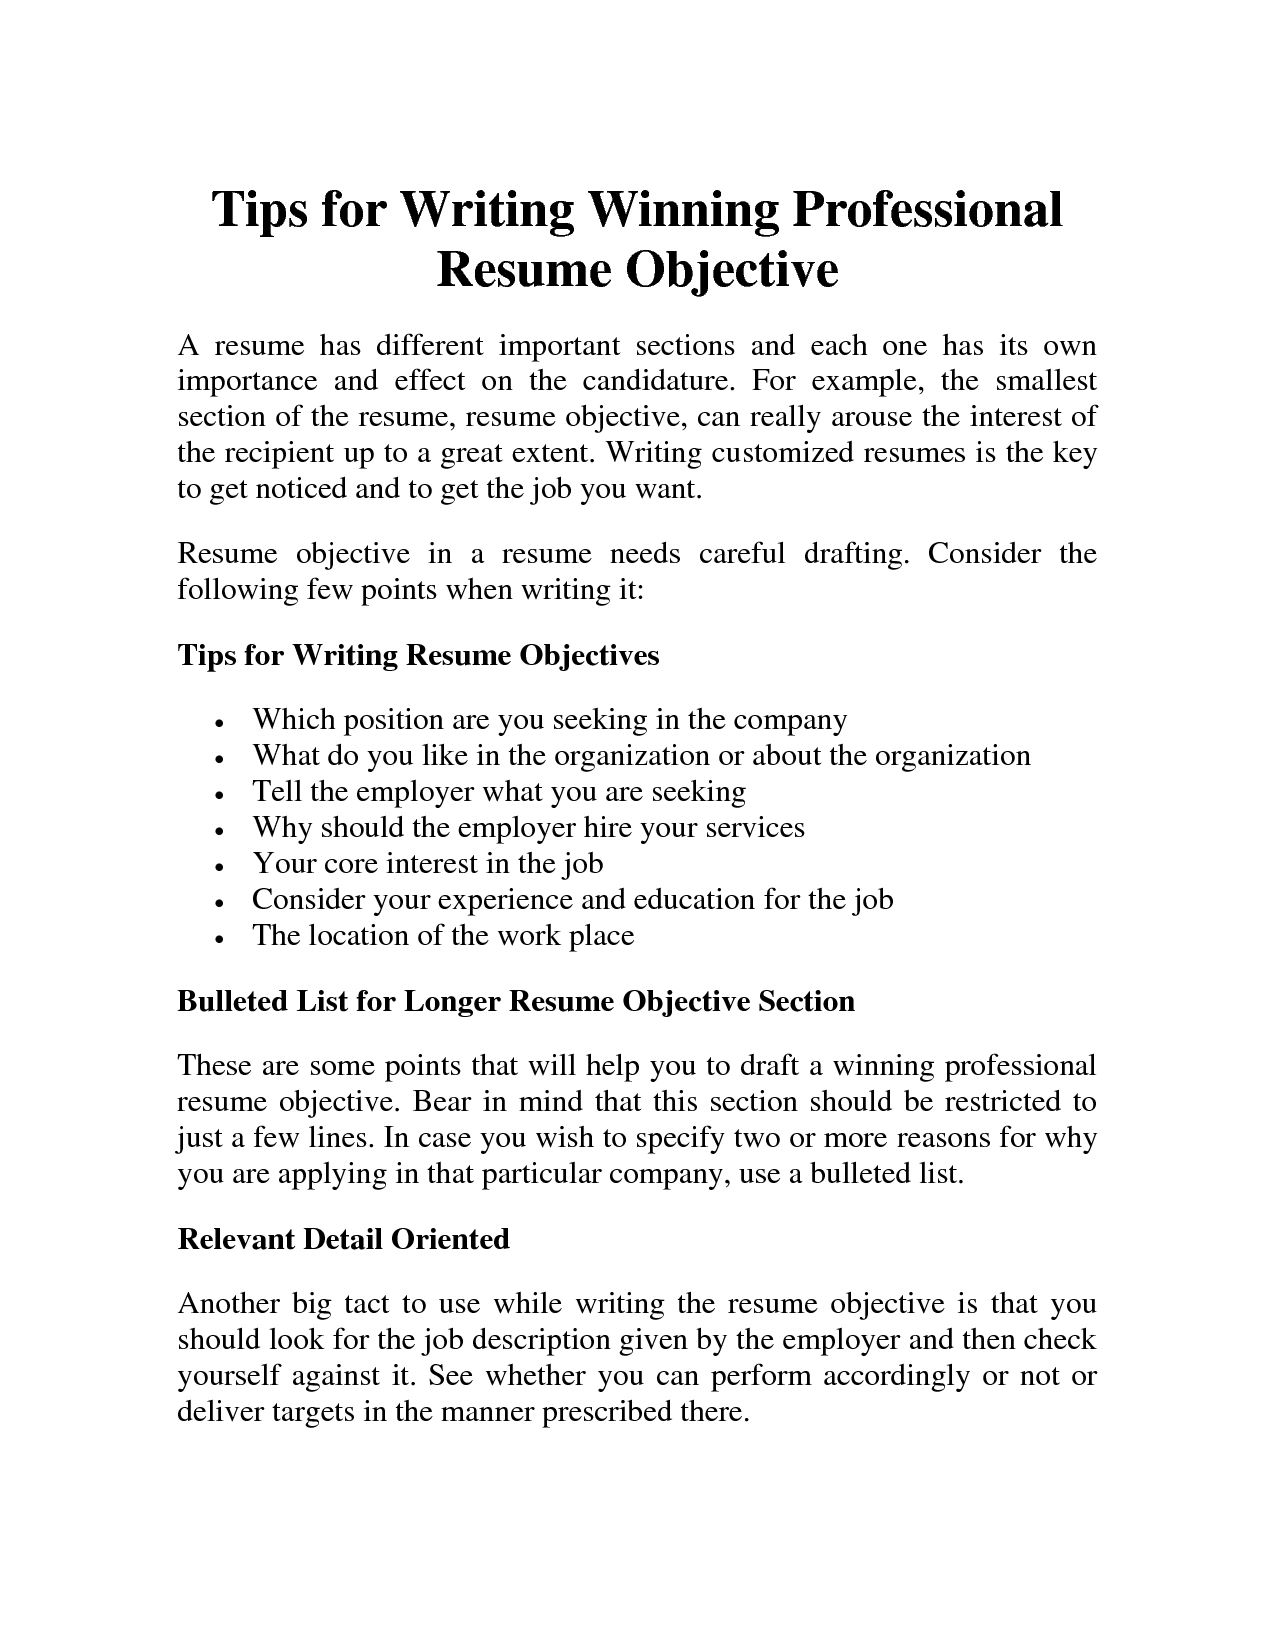 Professional Resume Objective SamplesProfessional Resume Objective Samples  Professional Resume Objective Samples,resume Objective Samples For  Simple Resume Objective